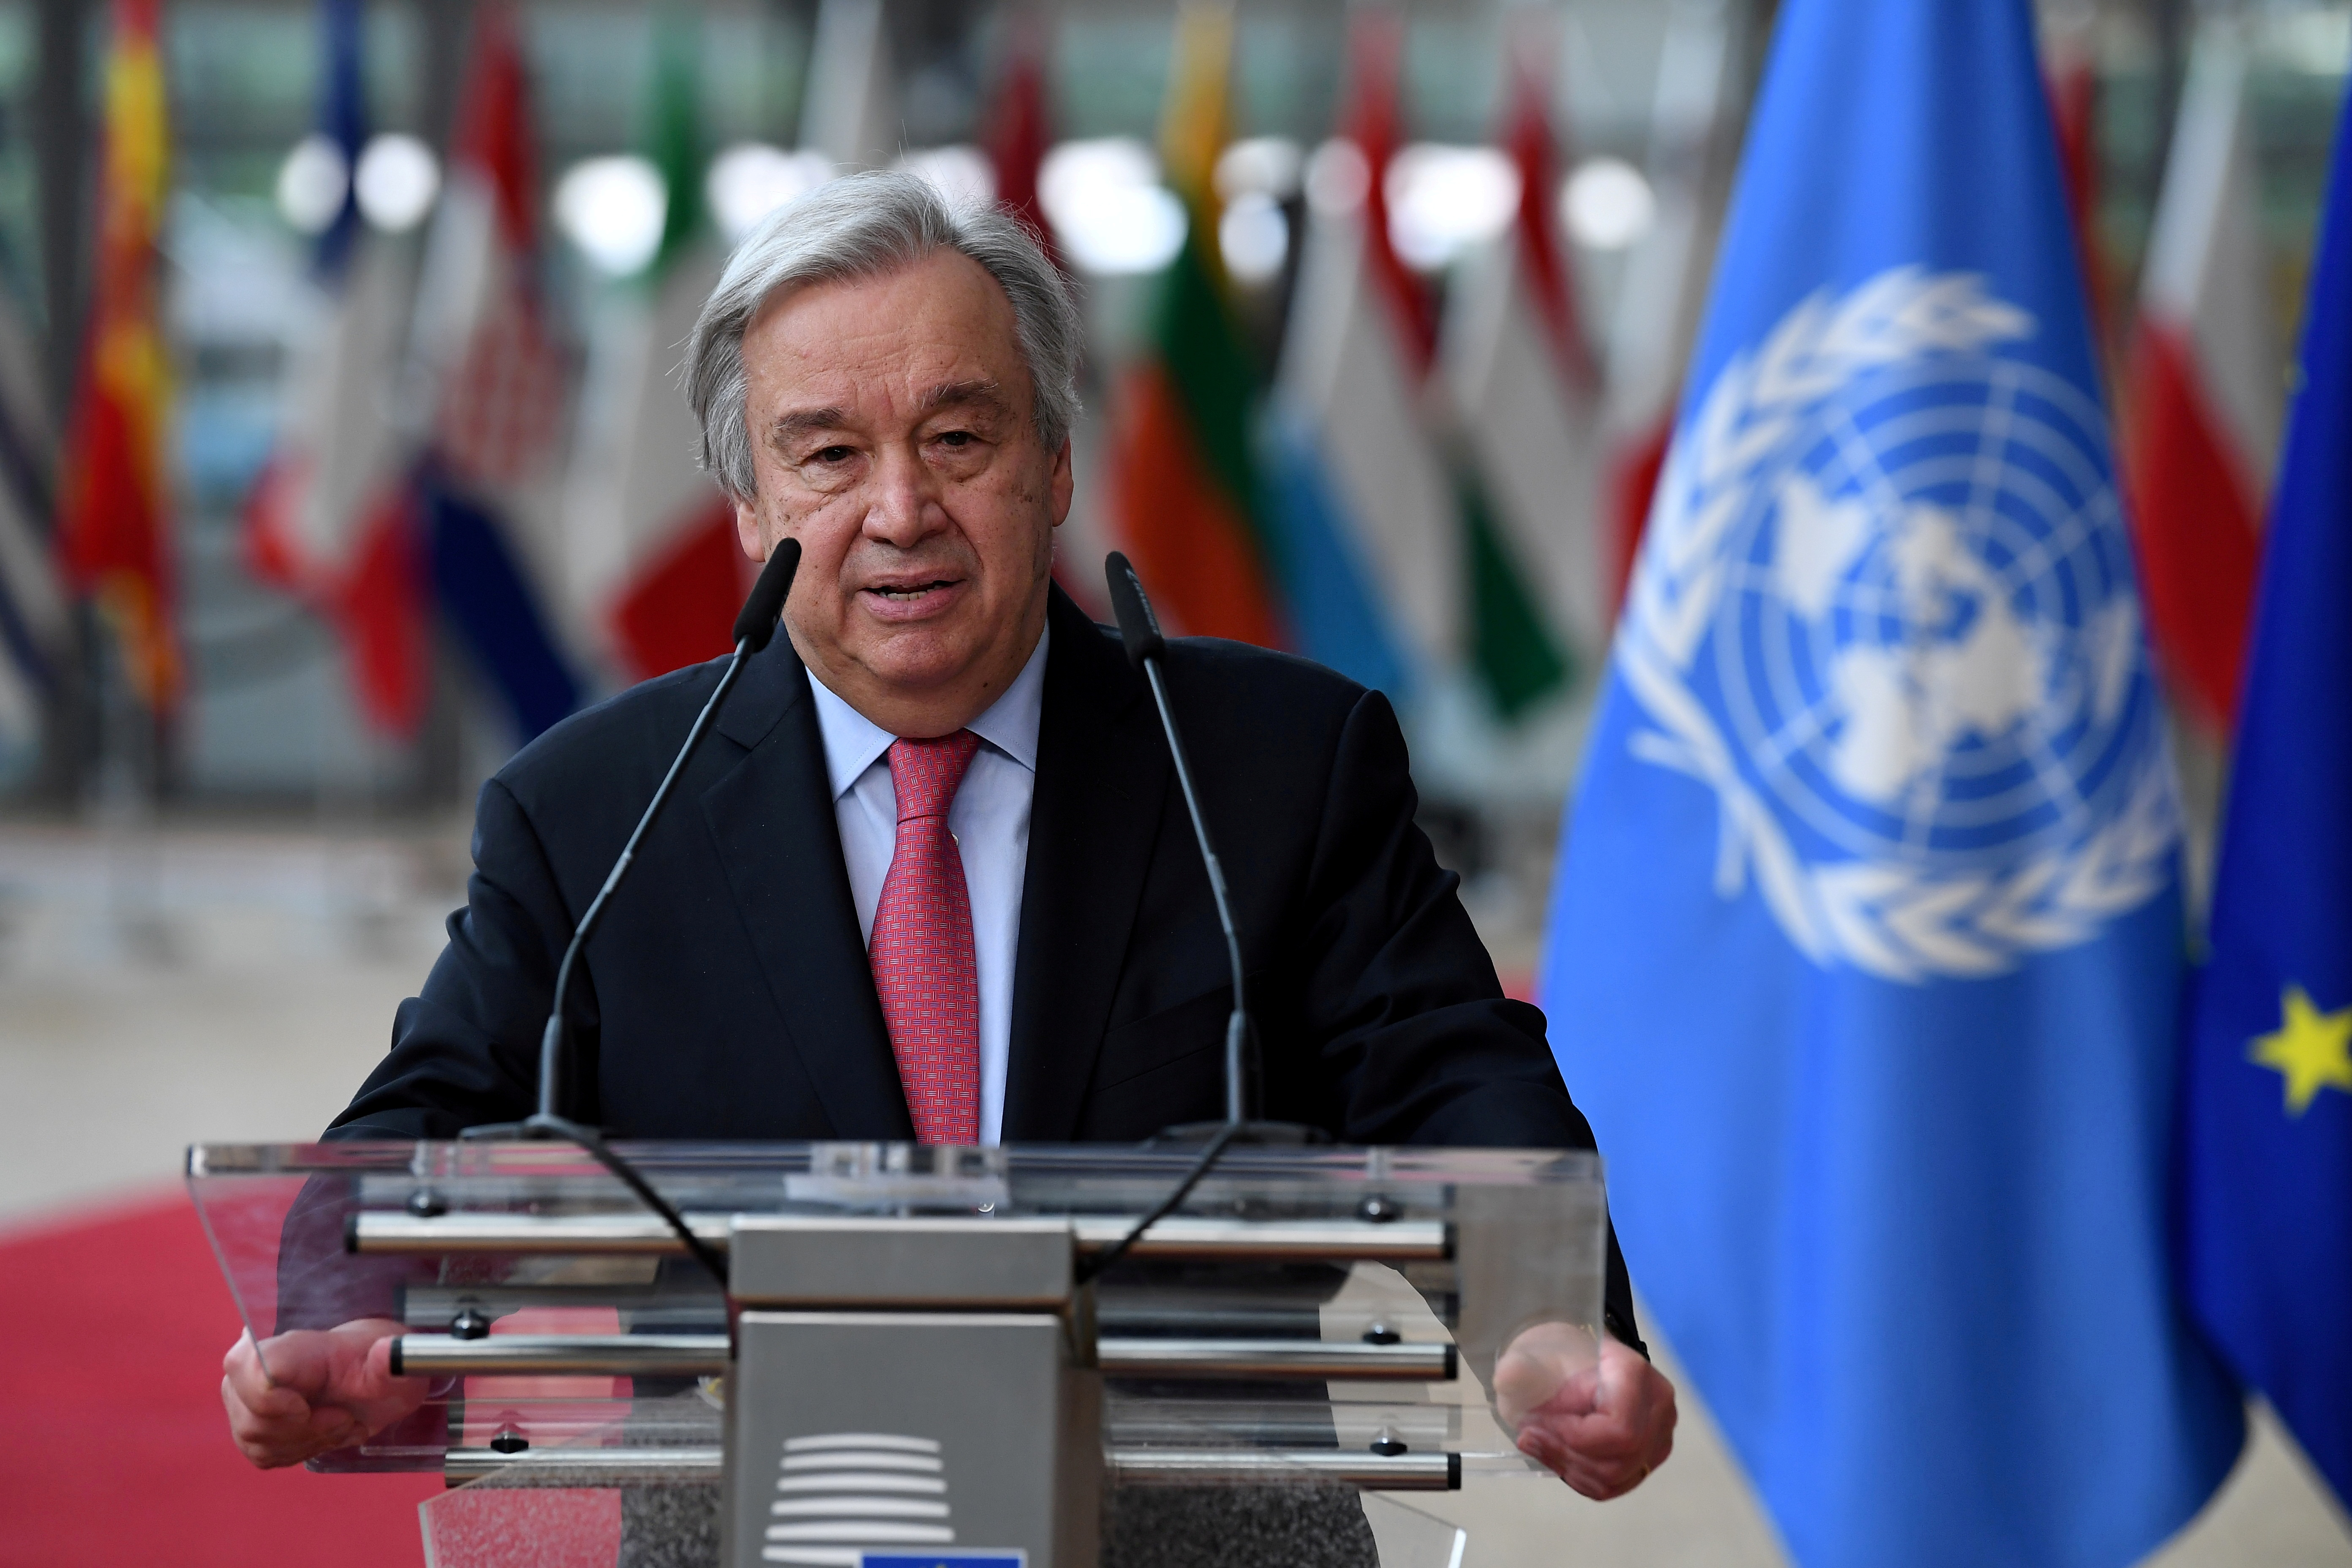 Secretary-General of the United Nations Antonio Guterres addresses the media as he arrives on the first day of the European Union summit at The European Council Building in Brussels, Belgium June 24, 2021. John Thys/Pool via REUTERS